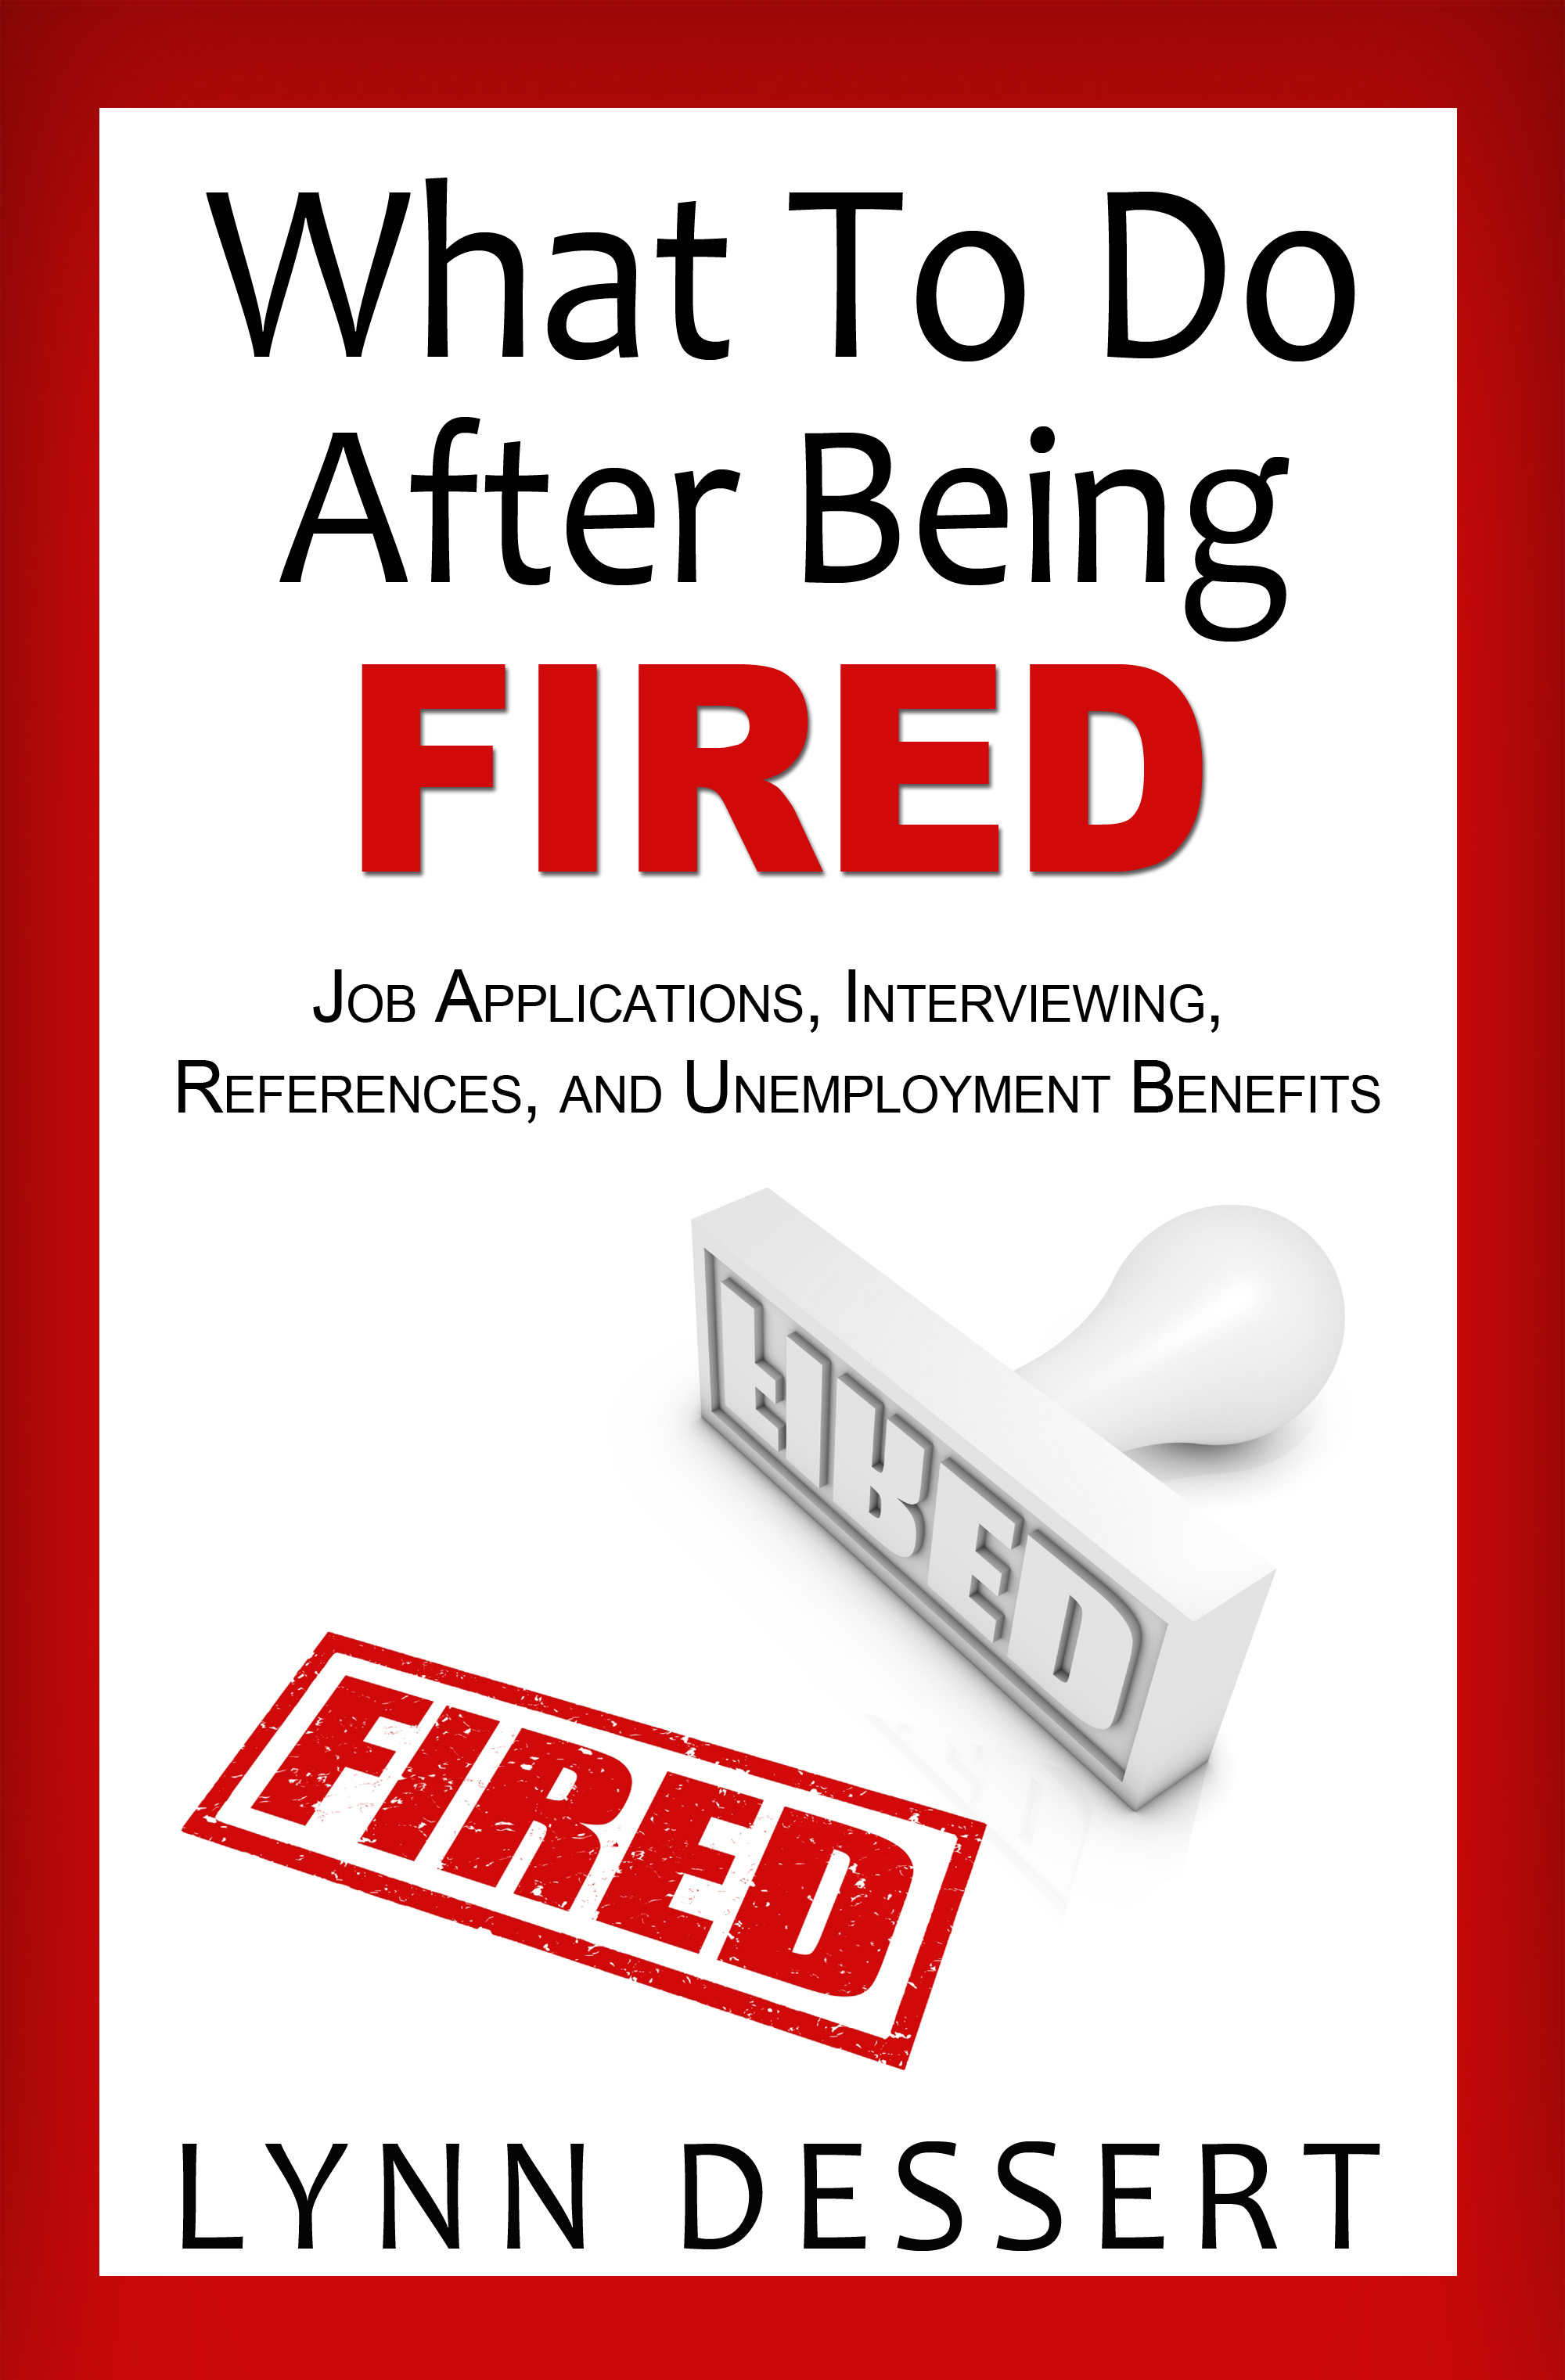 How To Write A Resume After Being Fired